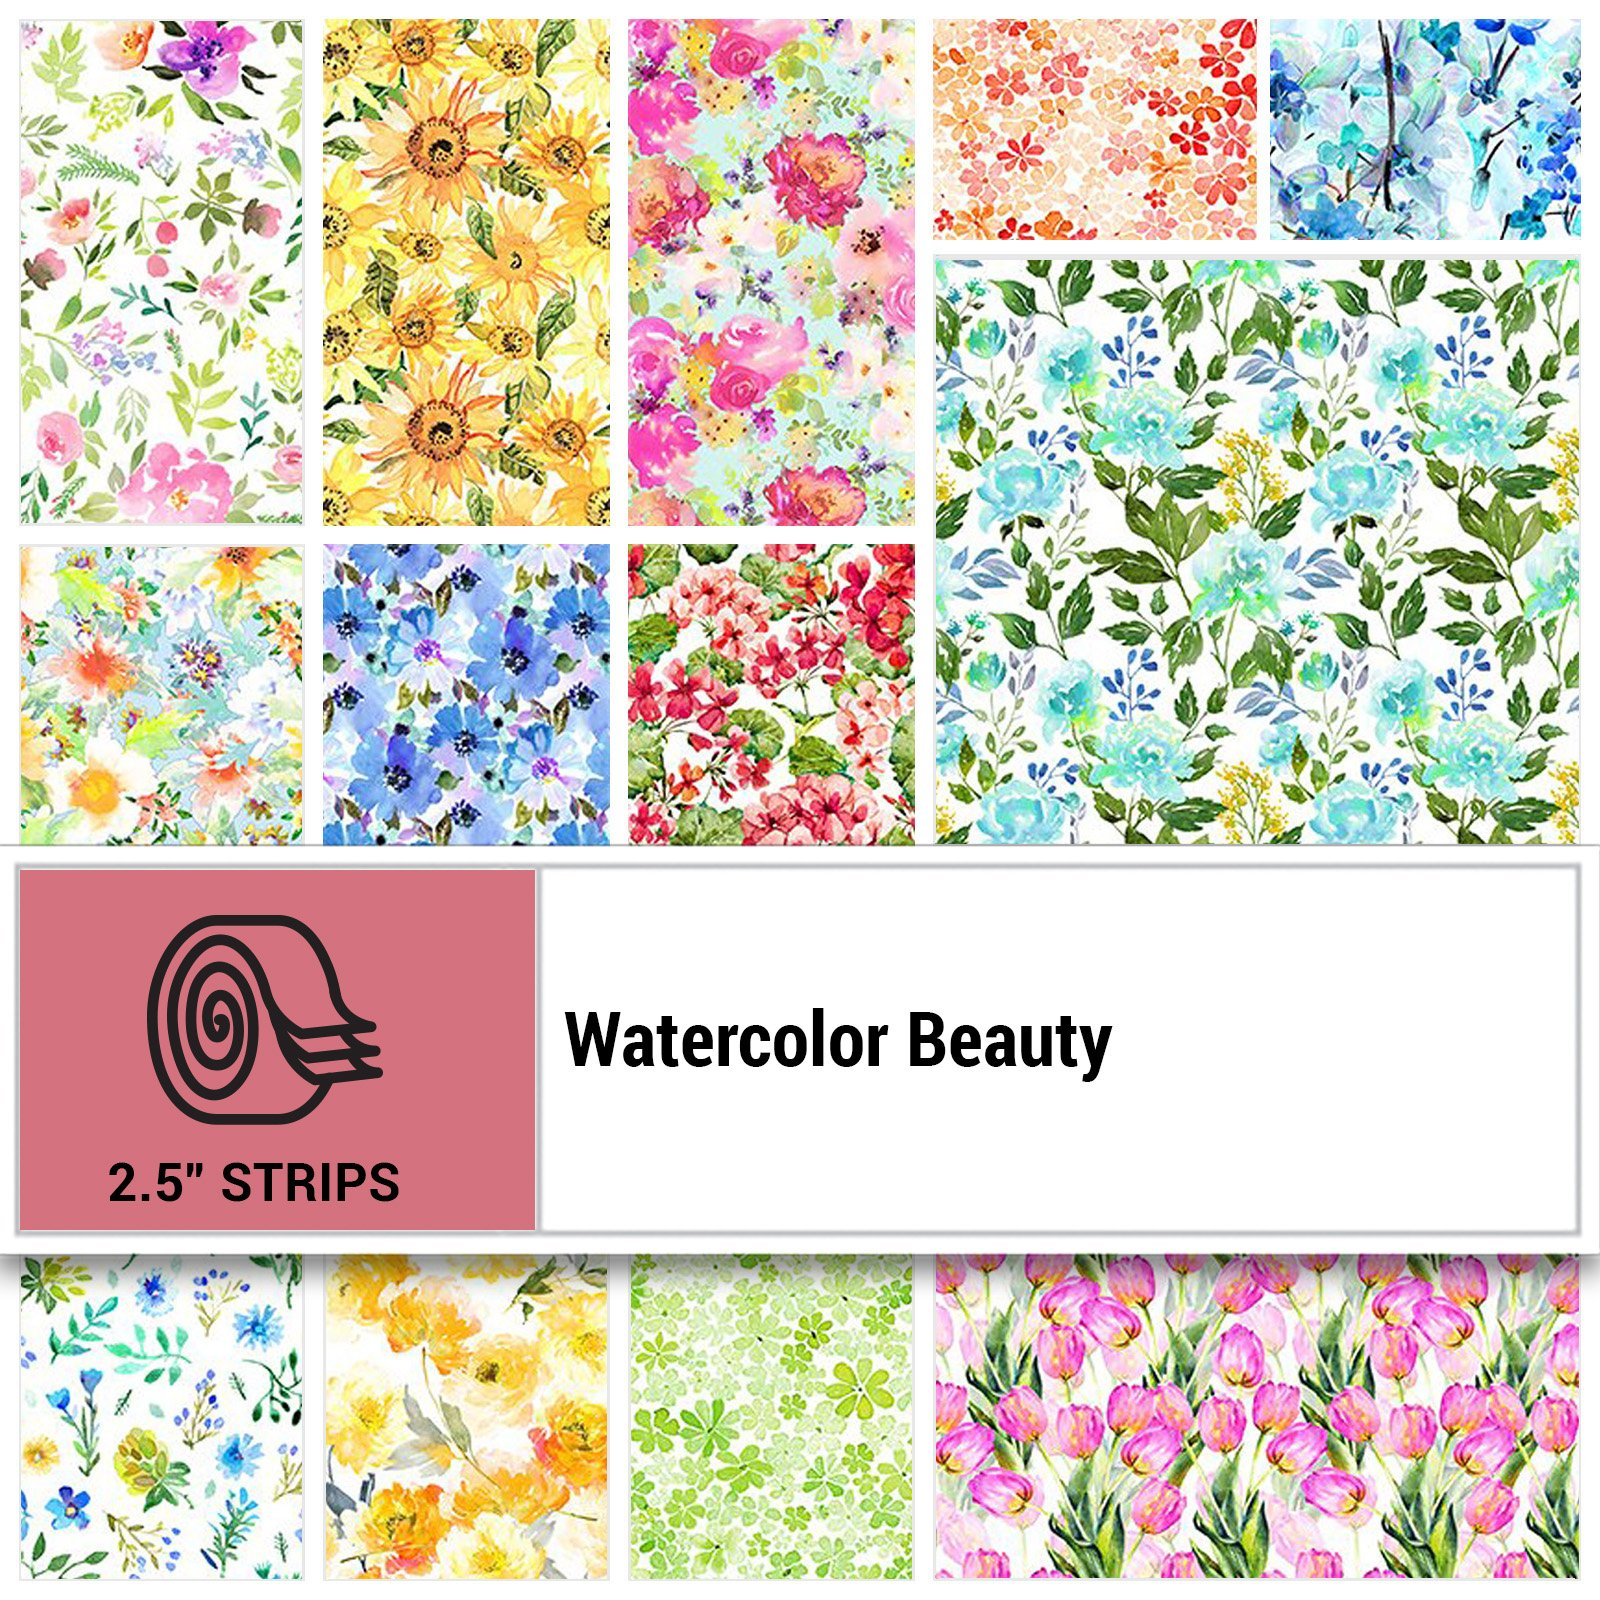 INTH-GSH SR - WATERCOLOR BEAUTY 2.5 STRIP ROLLS (18GSH 1 NOT INCLUDED) - ARRIVING IN MAY 2021